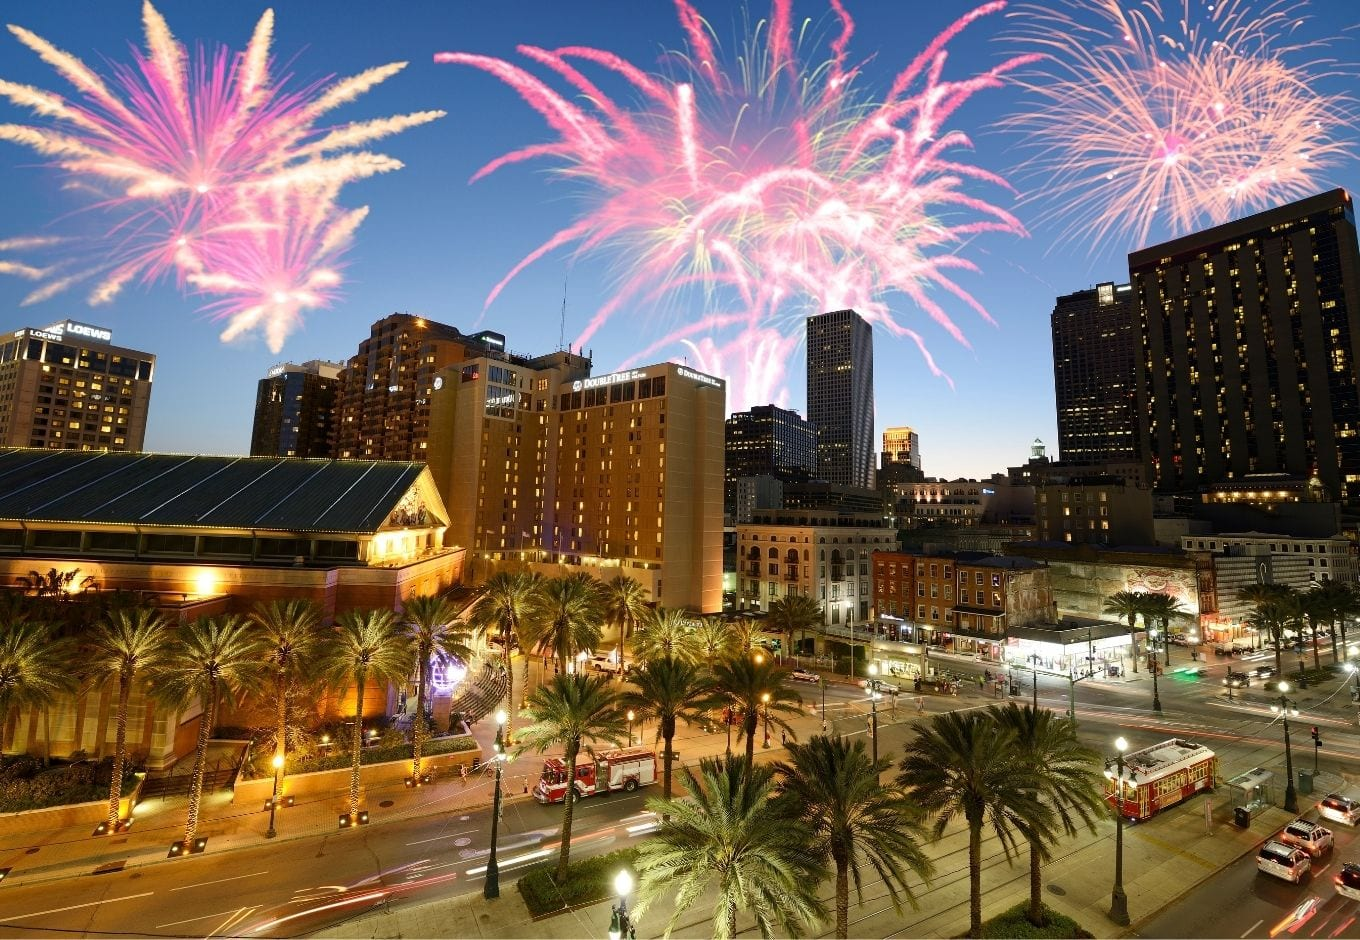 Fireworks in New Orleans, Louisiana.